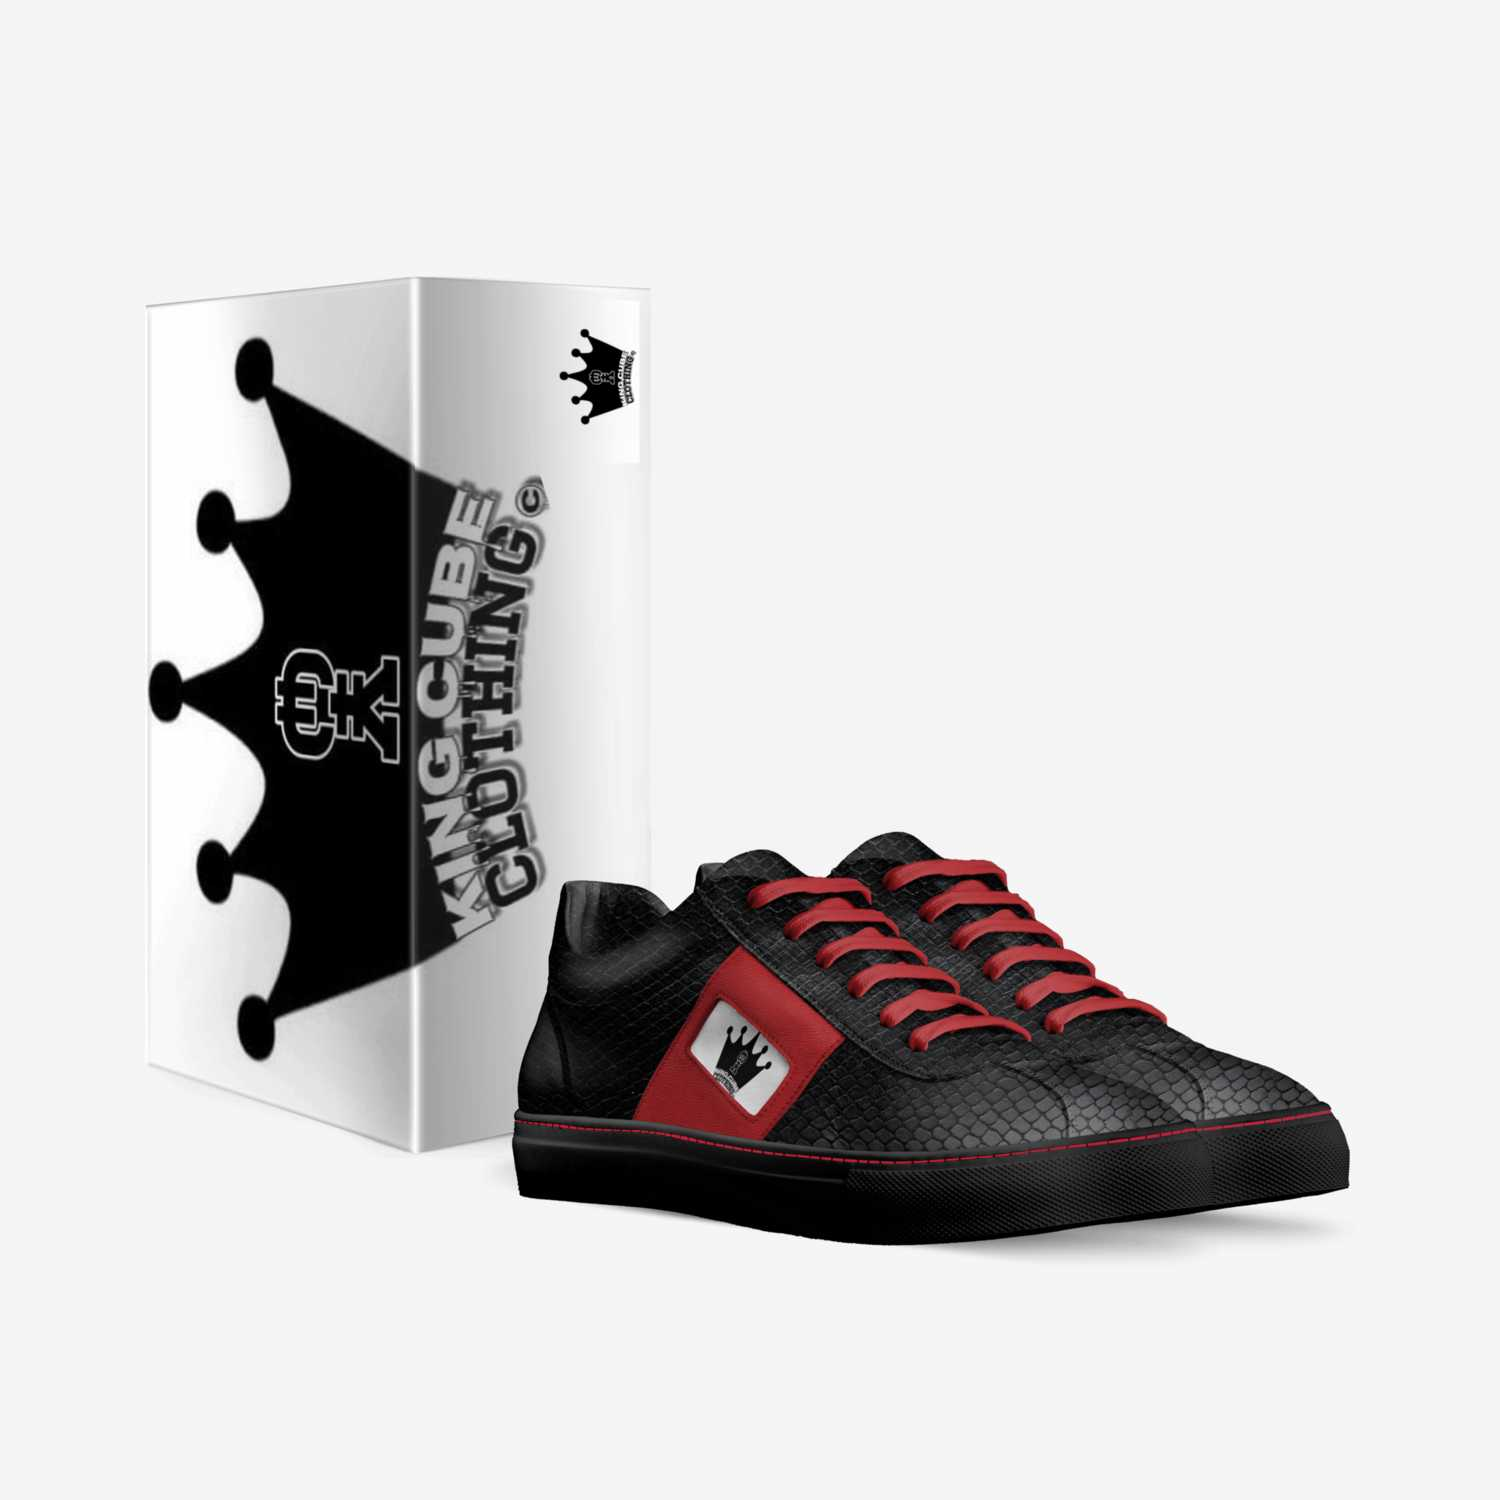 King Cube II custom made in Italy shoes by Vincent West | Box view